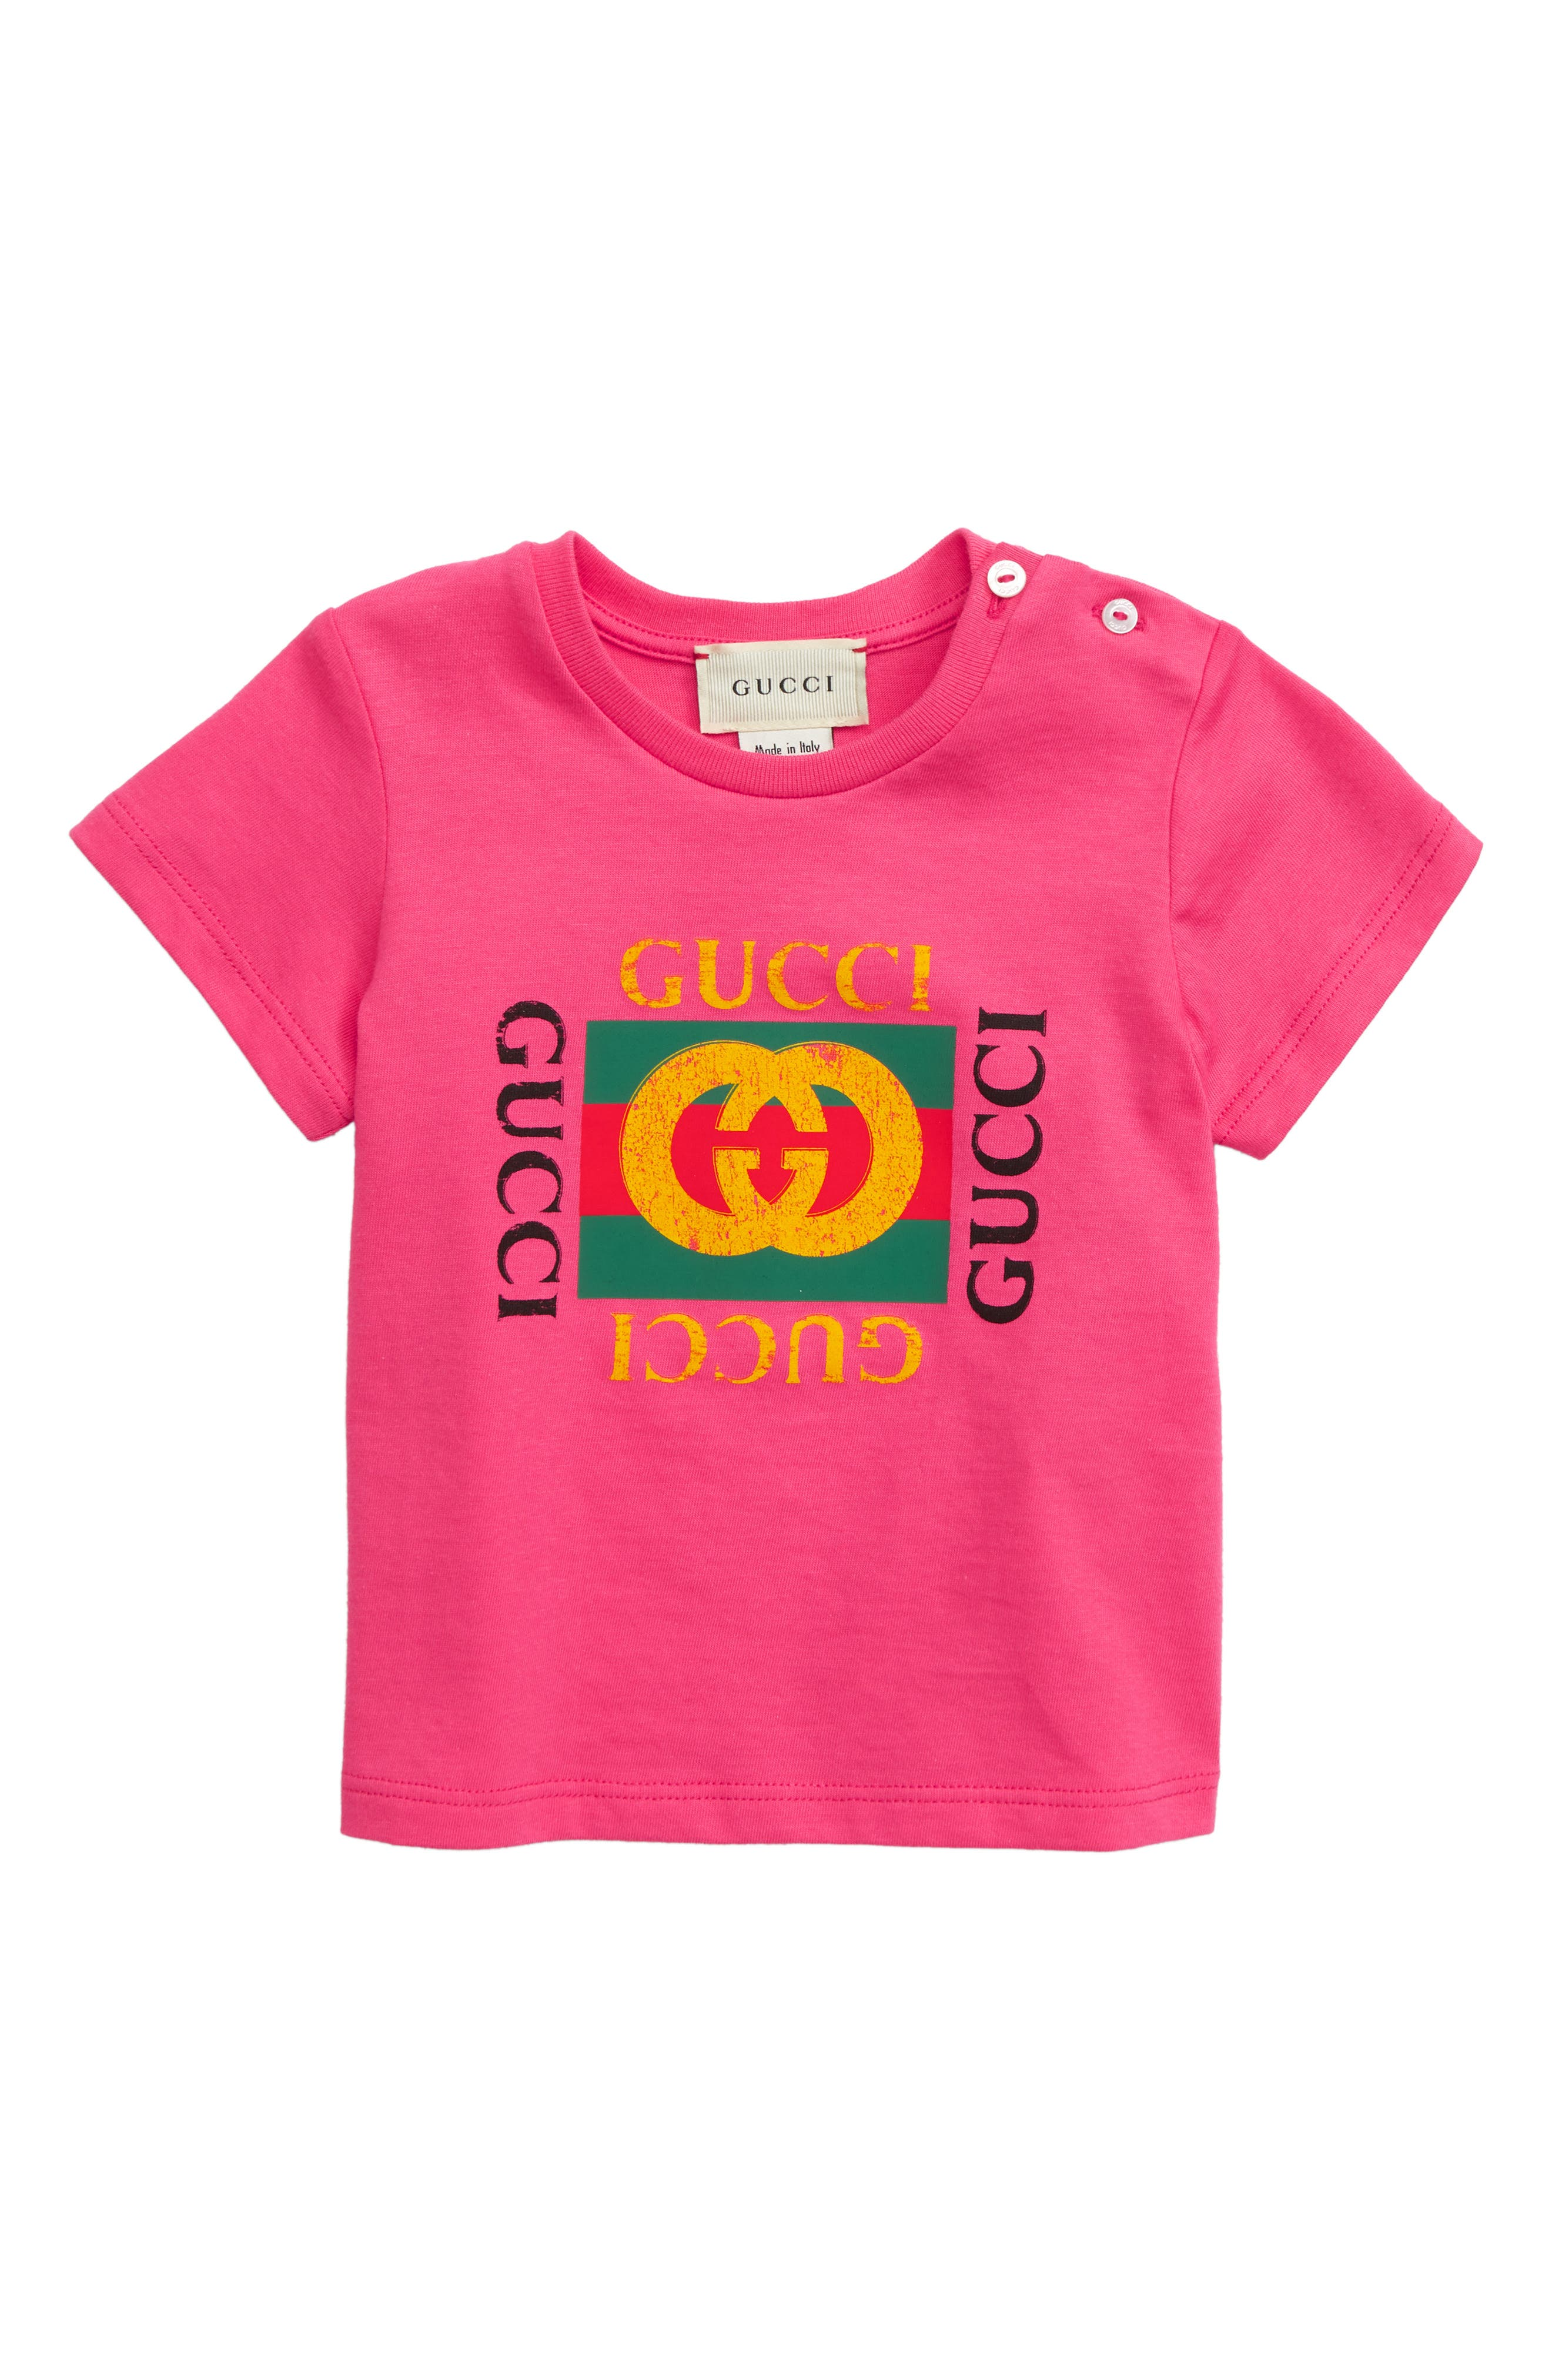 0dfb99adfe82 Gucci Baby Clothing